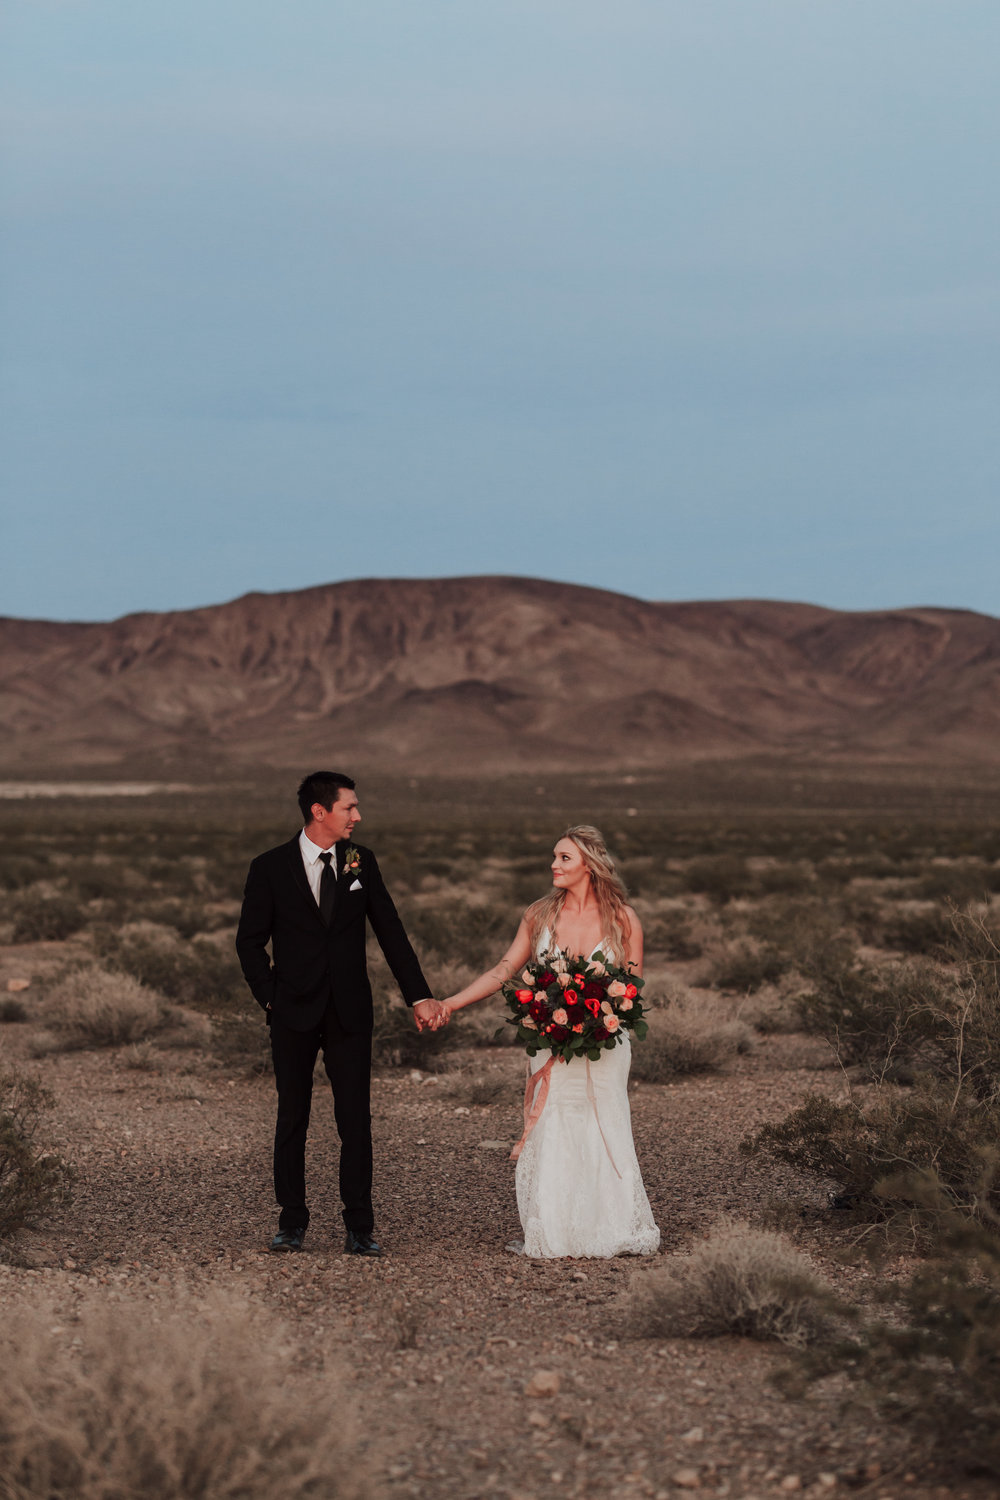 Rustic Bloom Photography | Las Vegas Desert Elopement | Emotional Vows